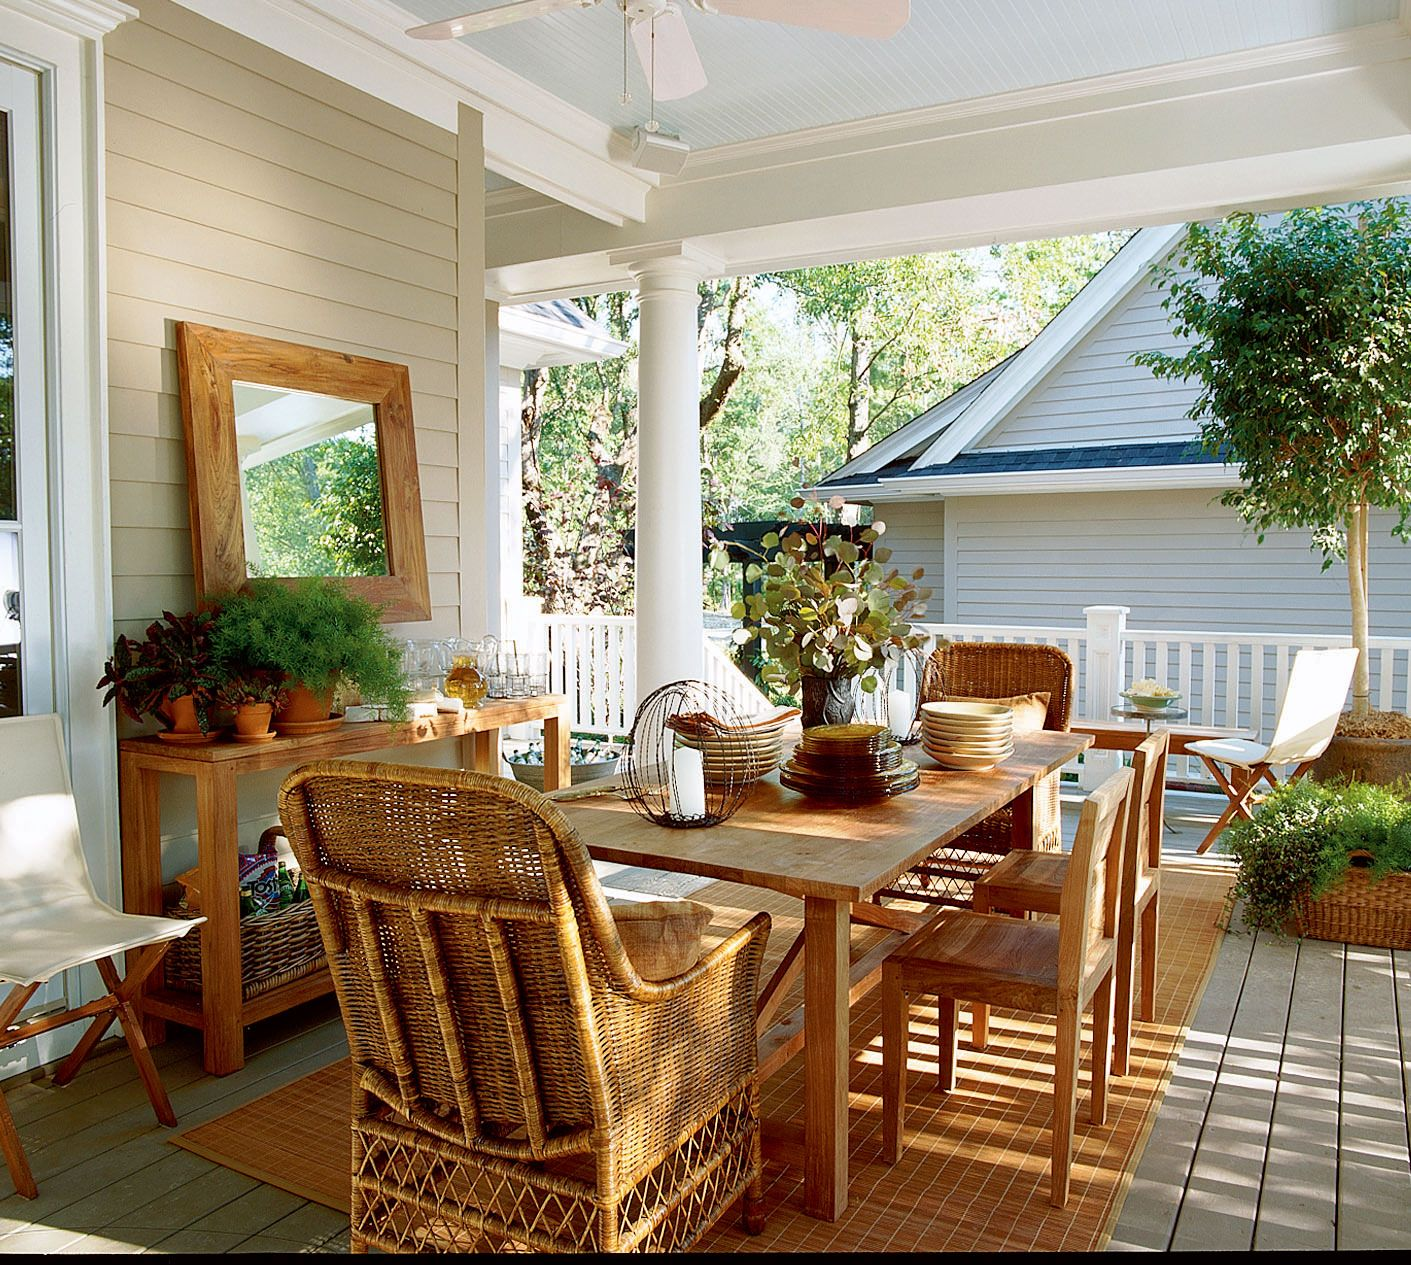 Back Porch Ideas: 76 Porch And Patio Designs You'll Love Year-Round